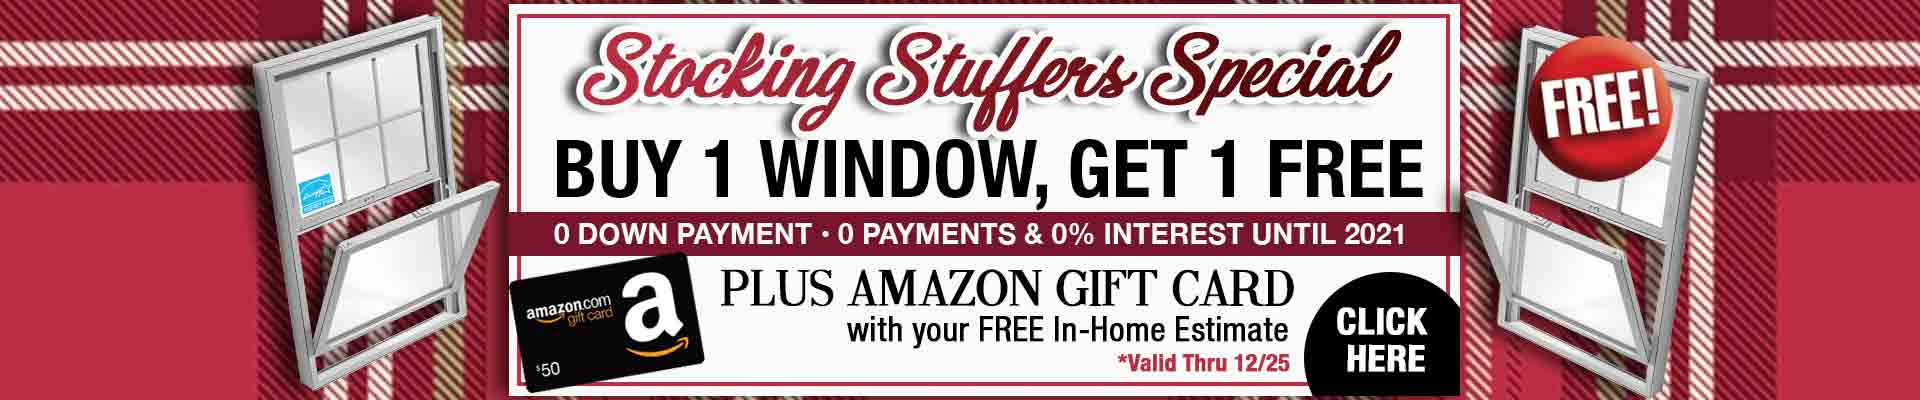 Window Nation Stocking Stuffer Special Offer BOGO